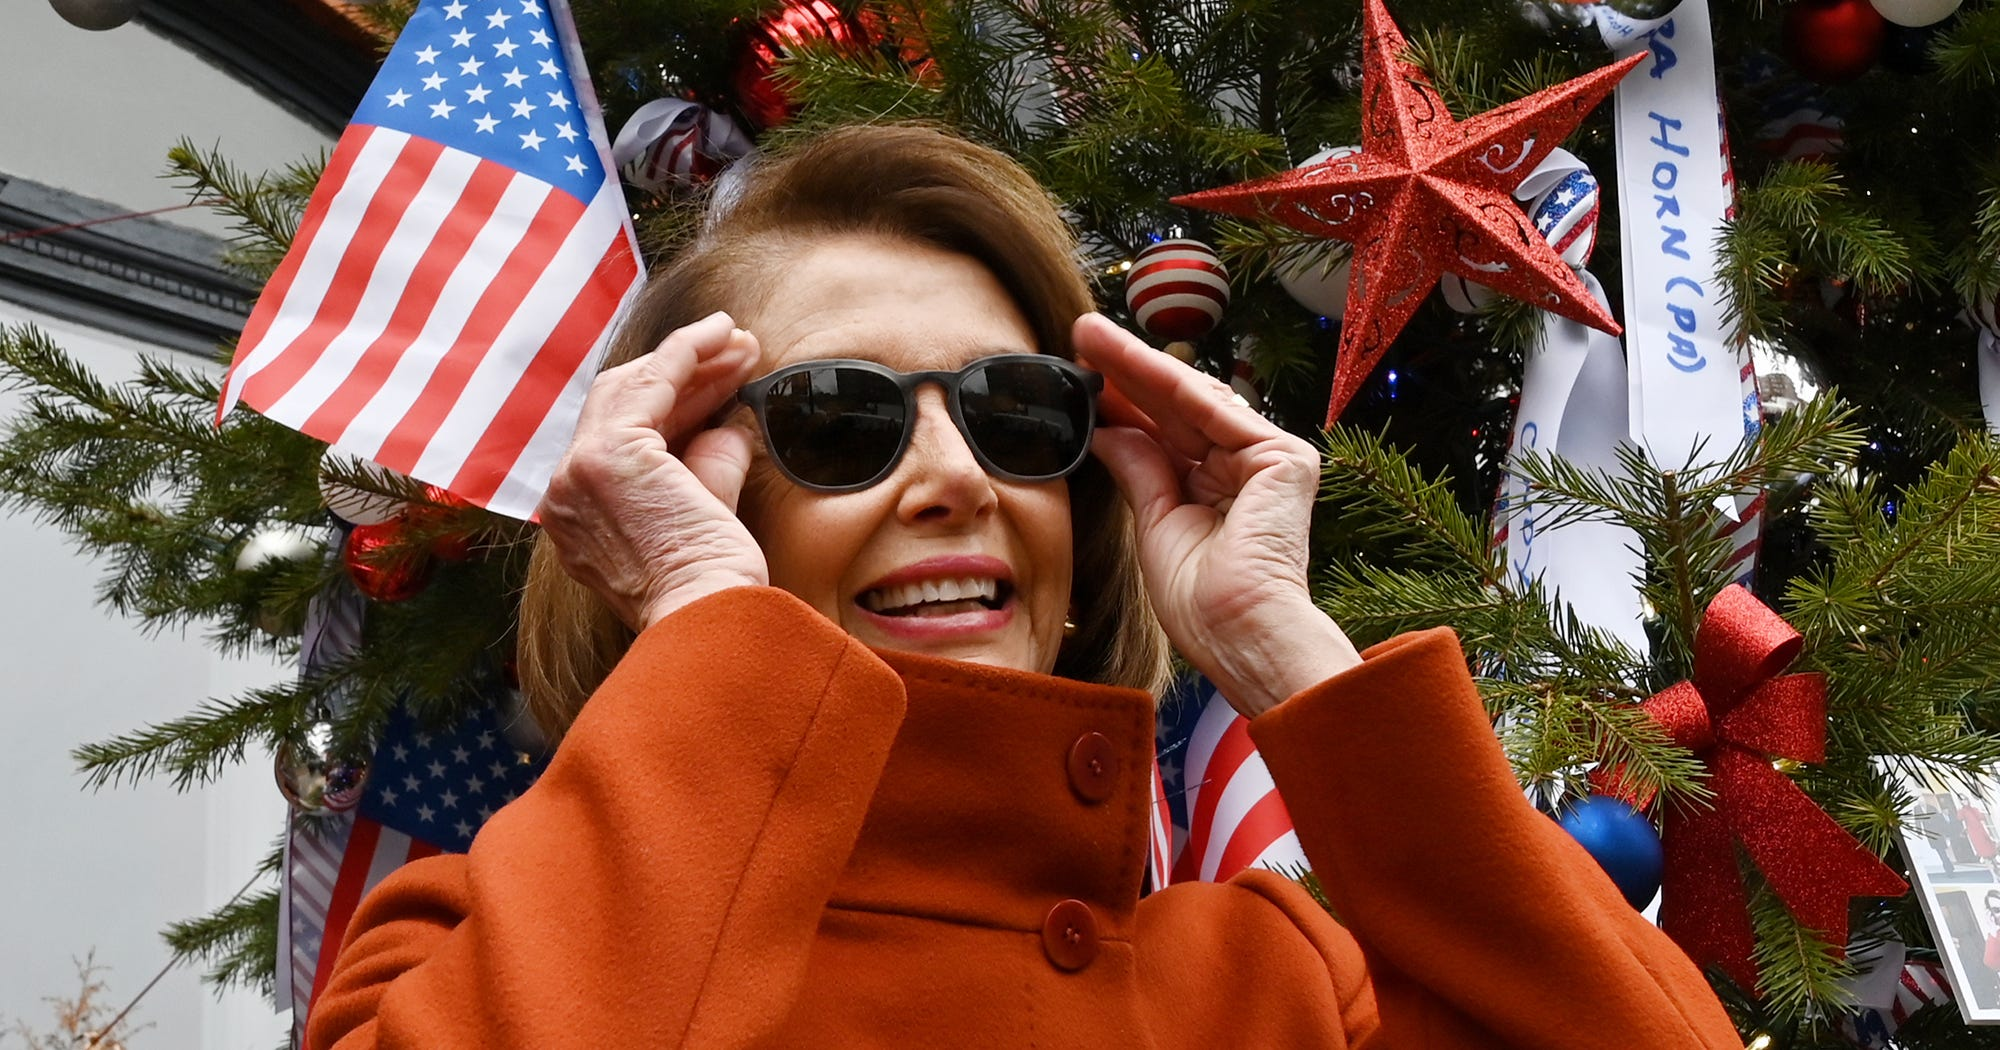 You Asked, We Answered: Here's How Nancy Pelosi Could Become President